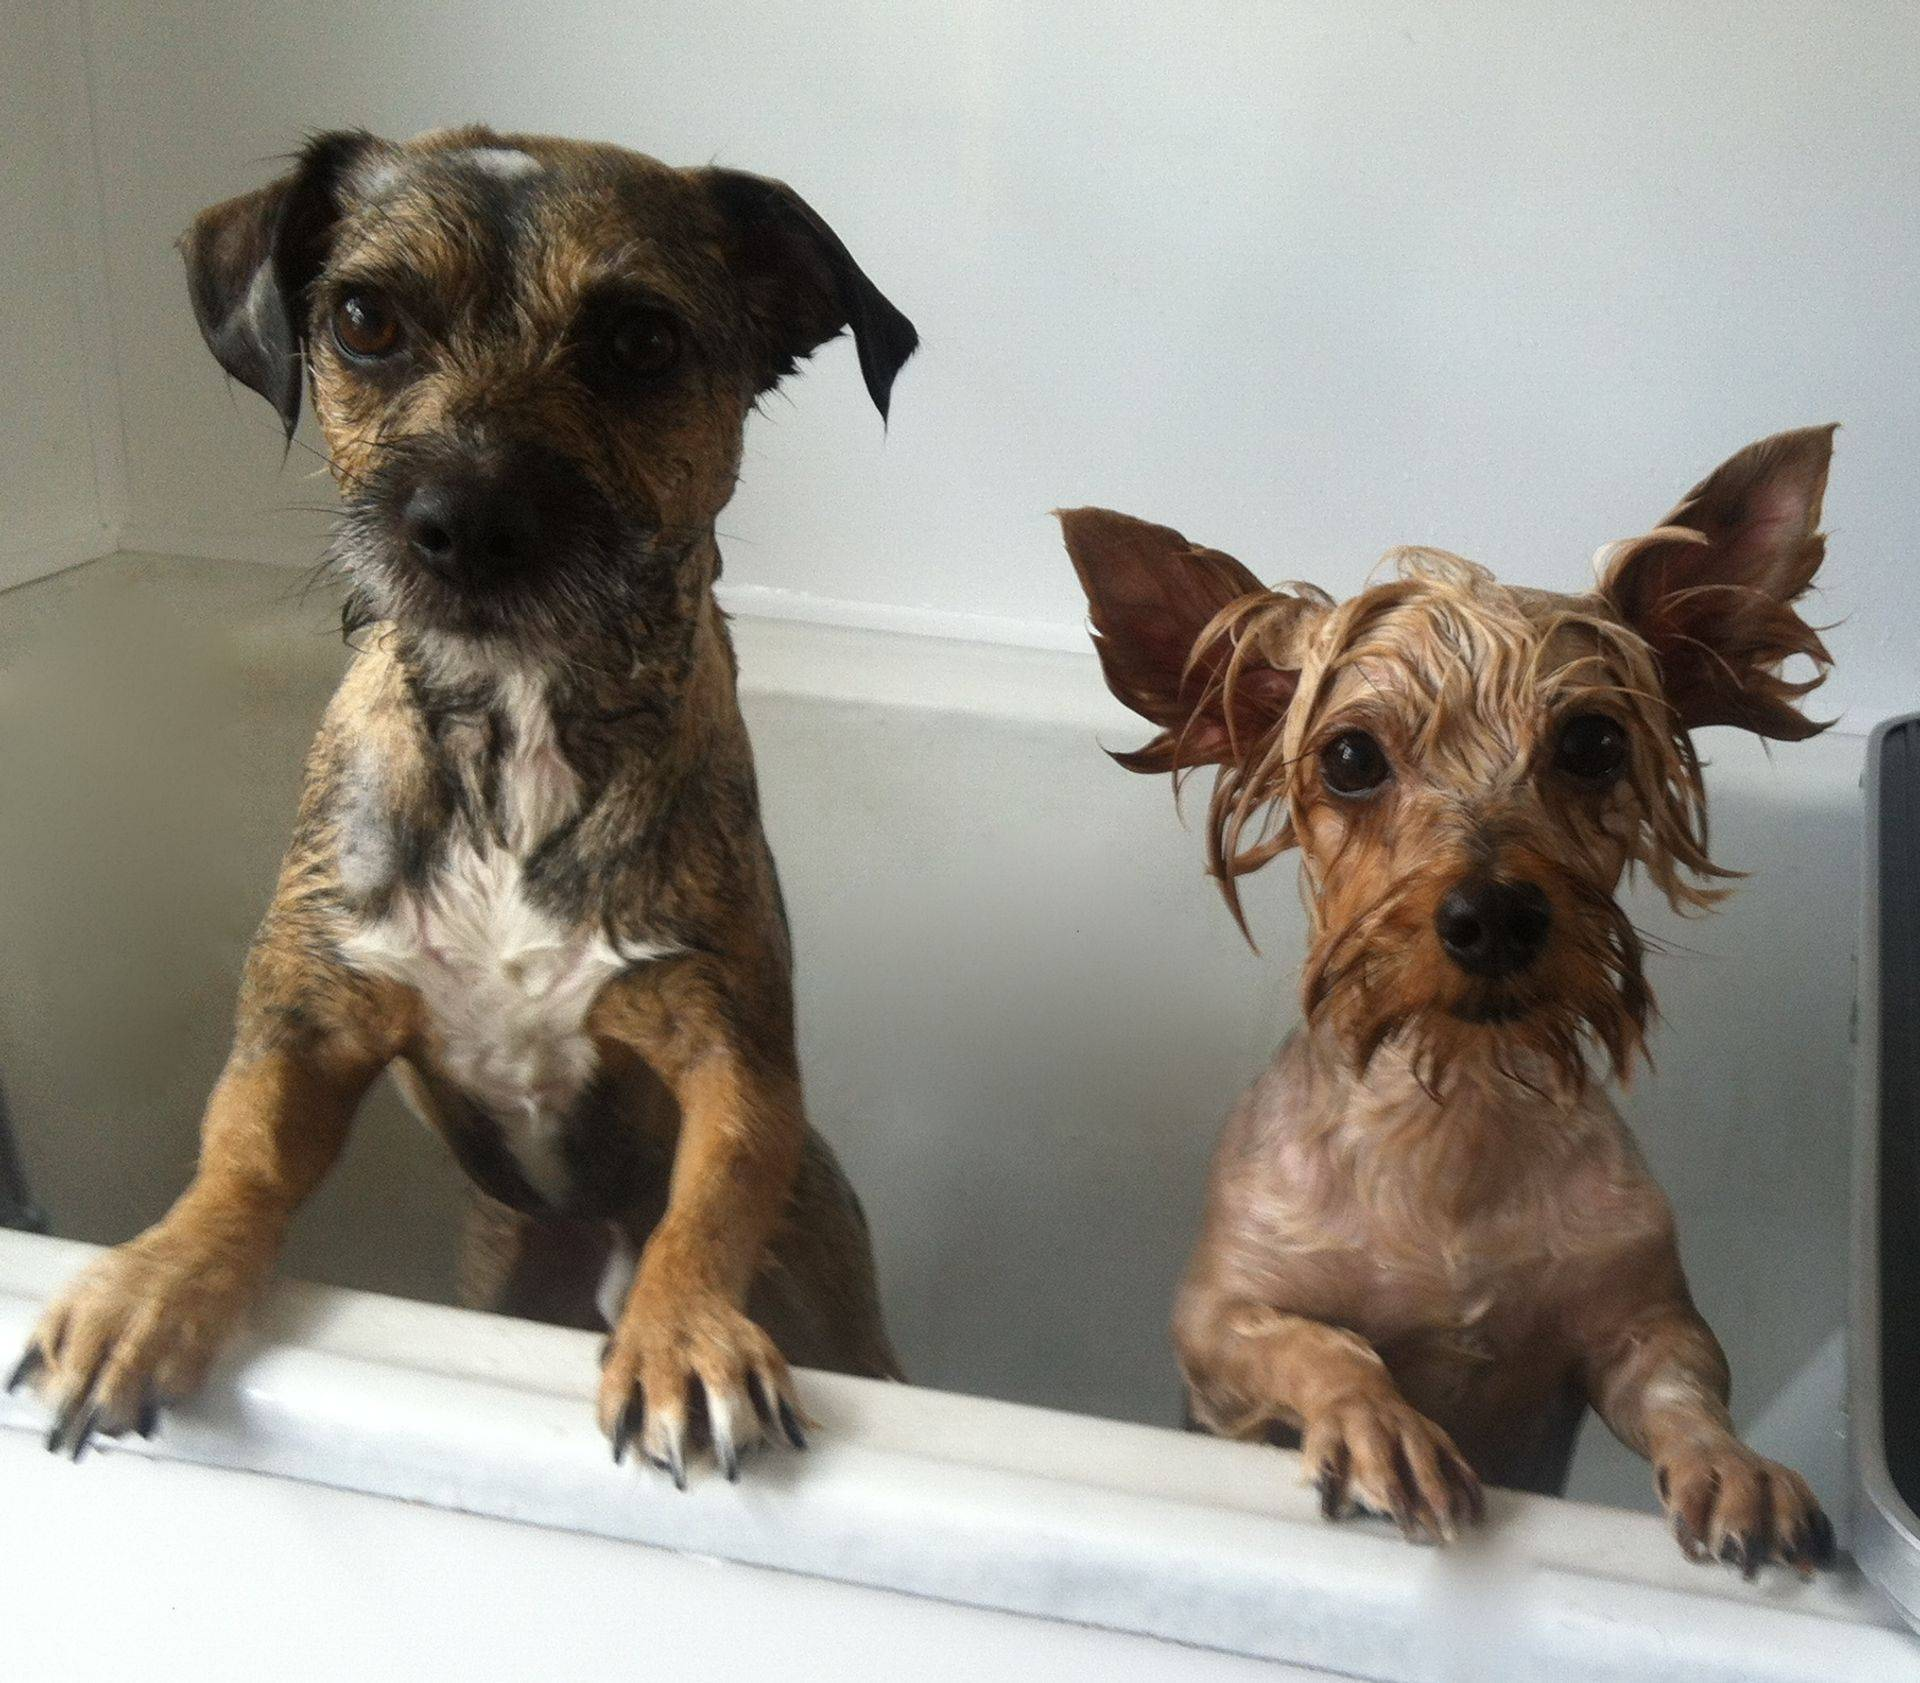 Buddy and Maizy. Its great to have a bath buddy